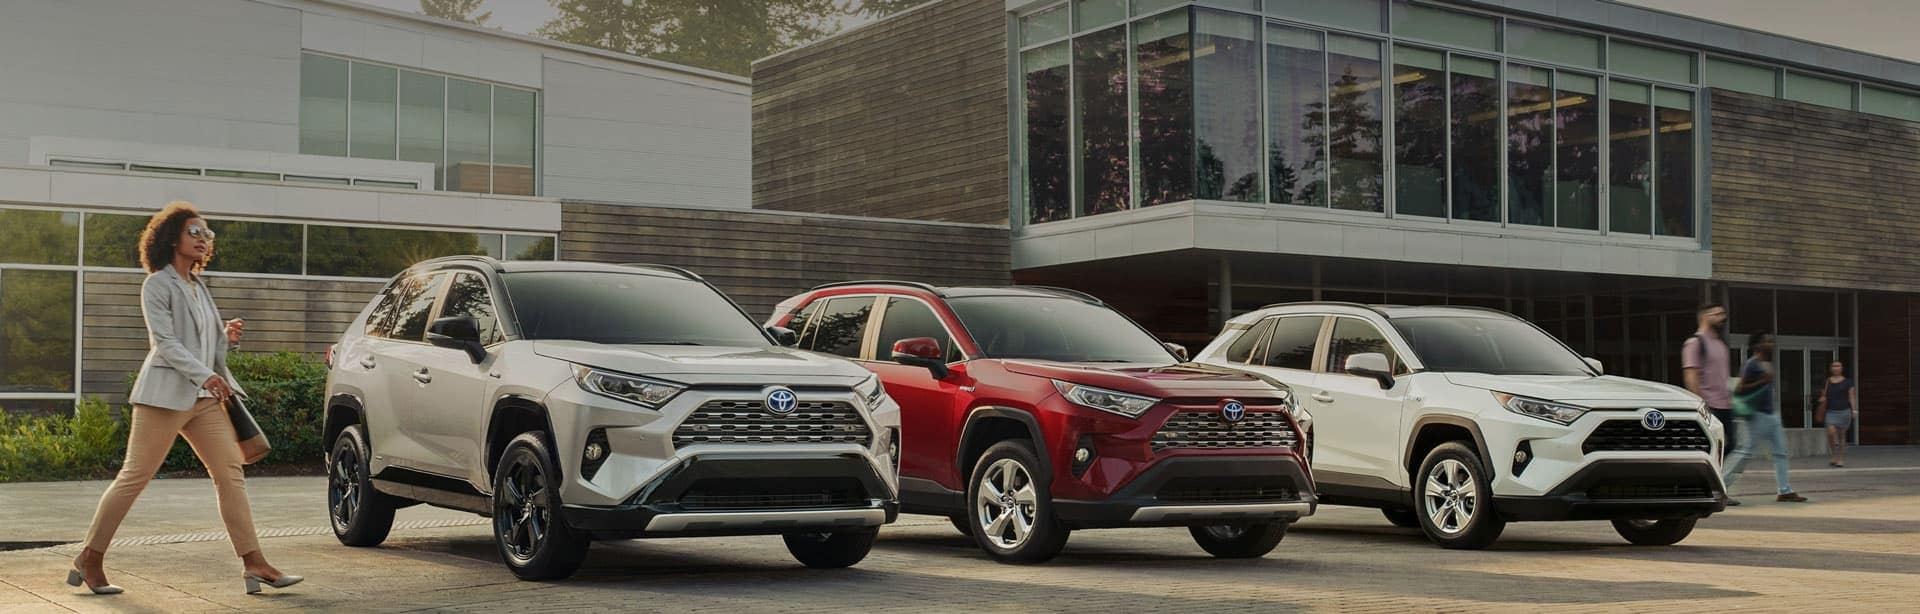 Three Toyota SUVs lined up in front of a building